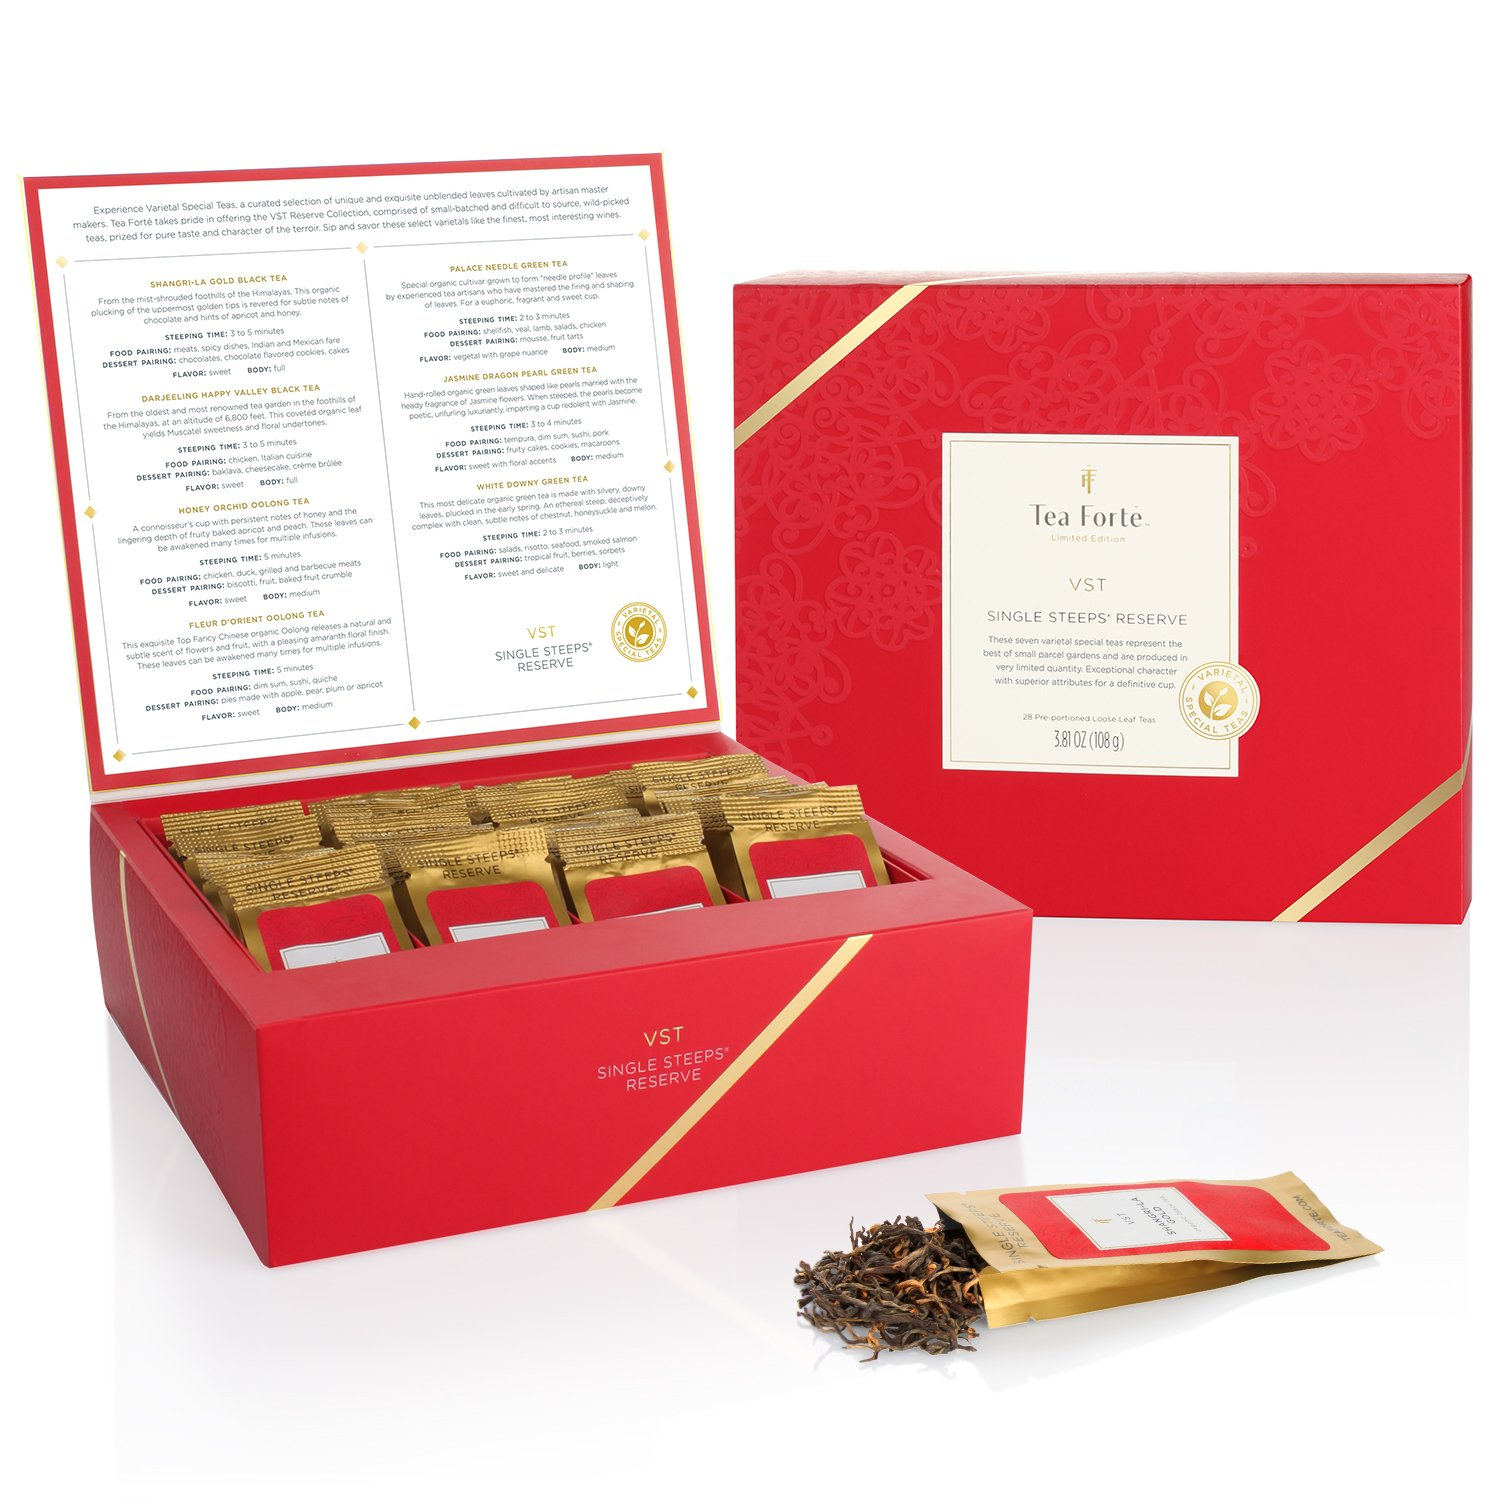 Tea Forté SINGLE STEEPS Loose Tea Sampler, Assorted Variety TEA CHEST, 28 Different Single Serve Pouches - Black Tea, Green Tea, White Tea, Herbal Tea Tea Forte